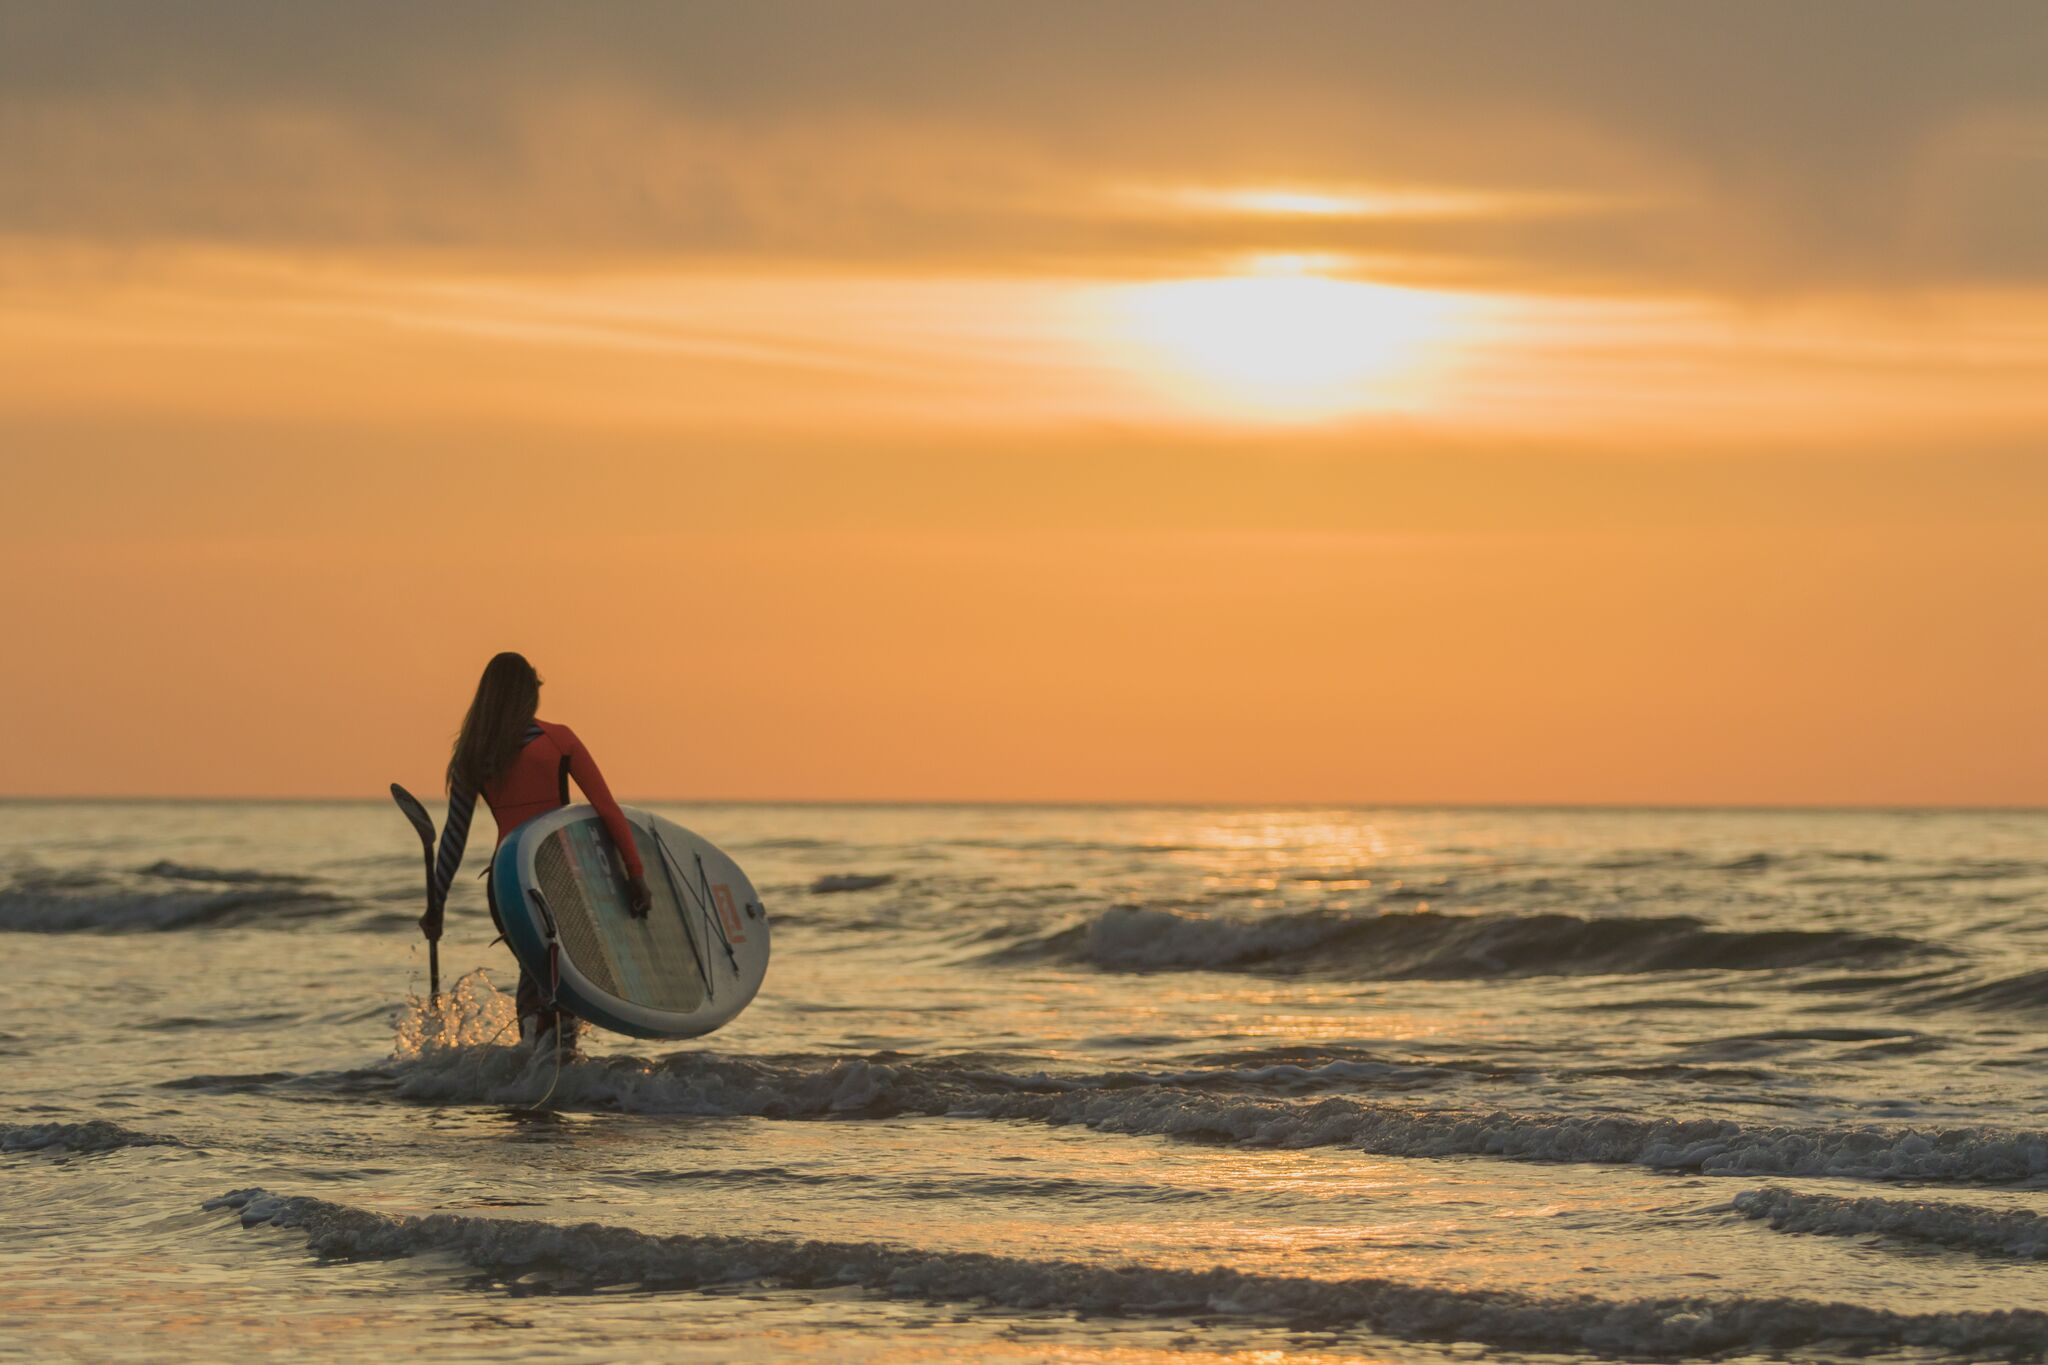 Lizzie Carr paddle boarding. Photograph © Lizzie Carr